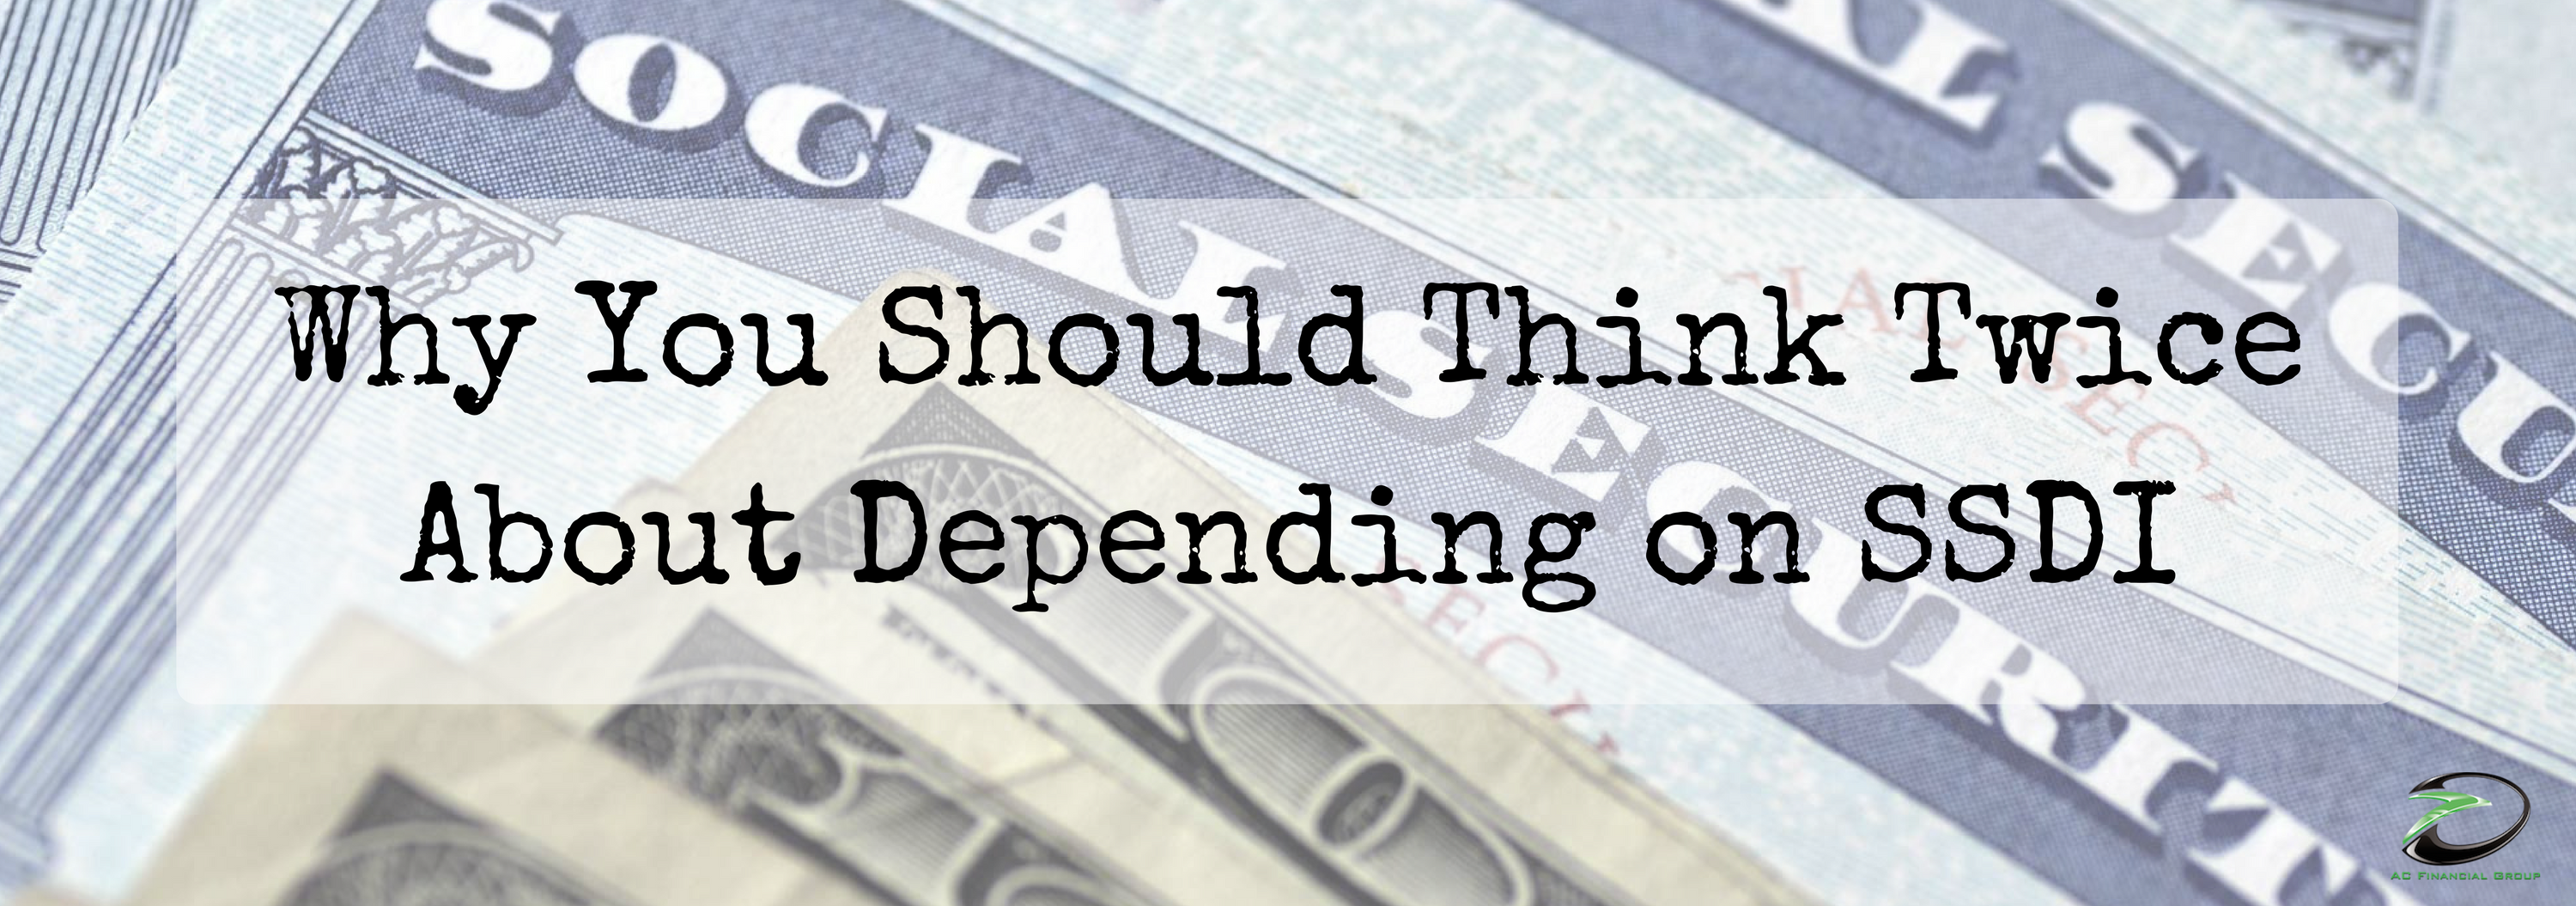 Why You Should Think Twice About Depending On SSDI